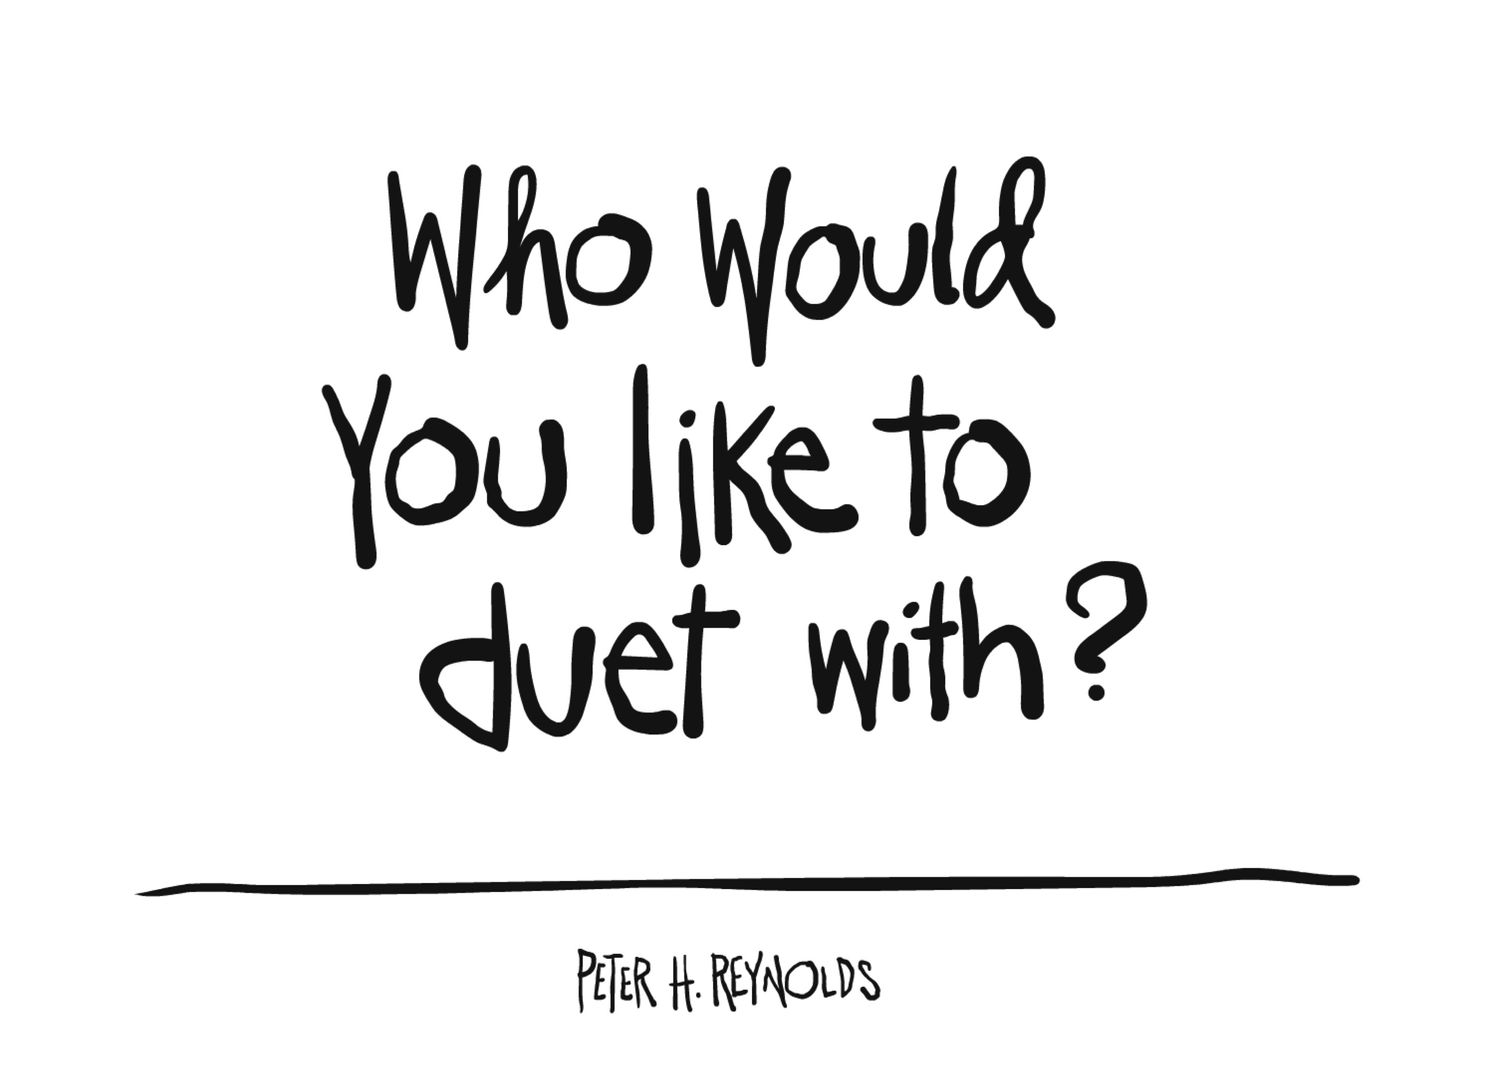 Who would you like to duet with? Peter Reynolds